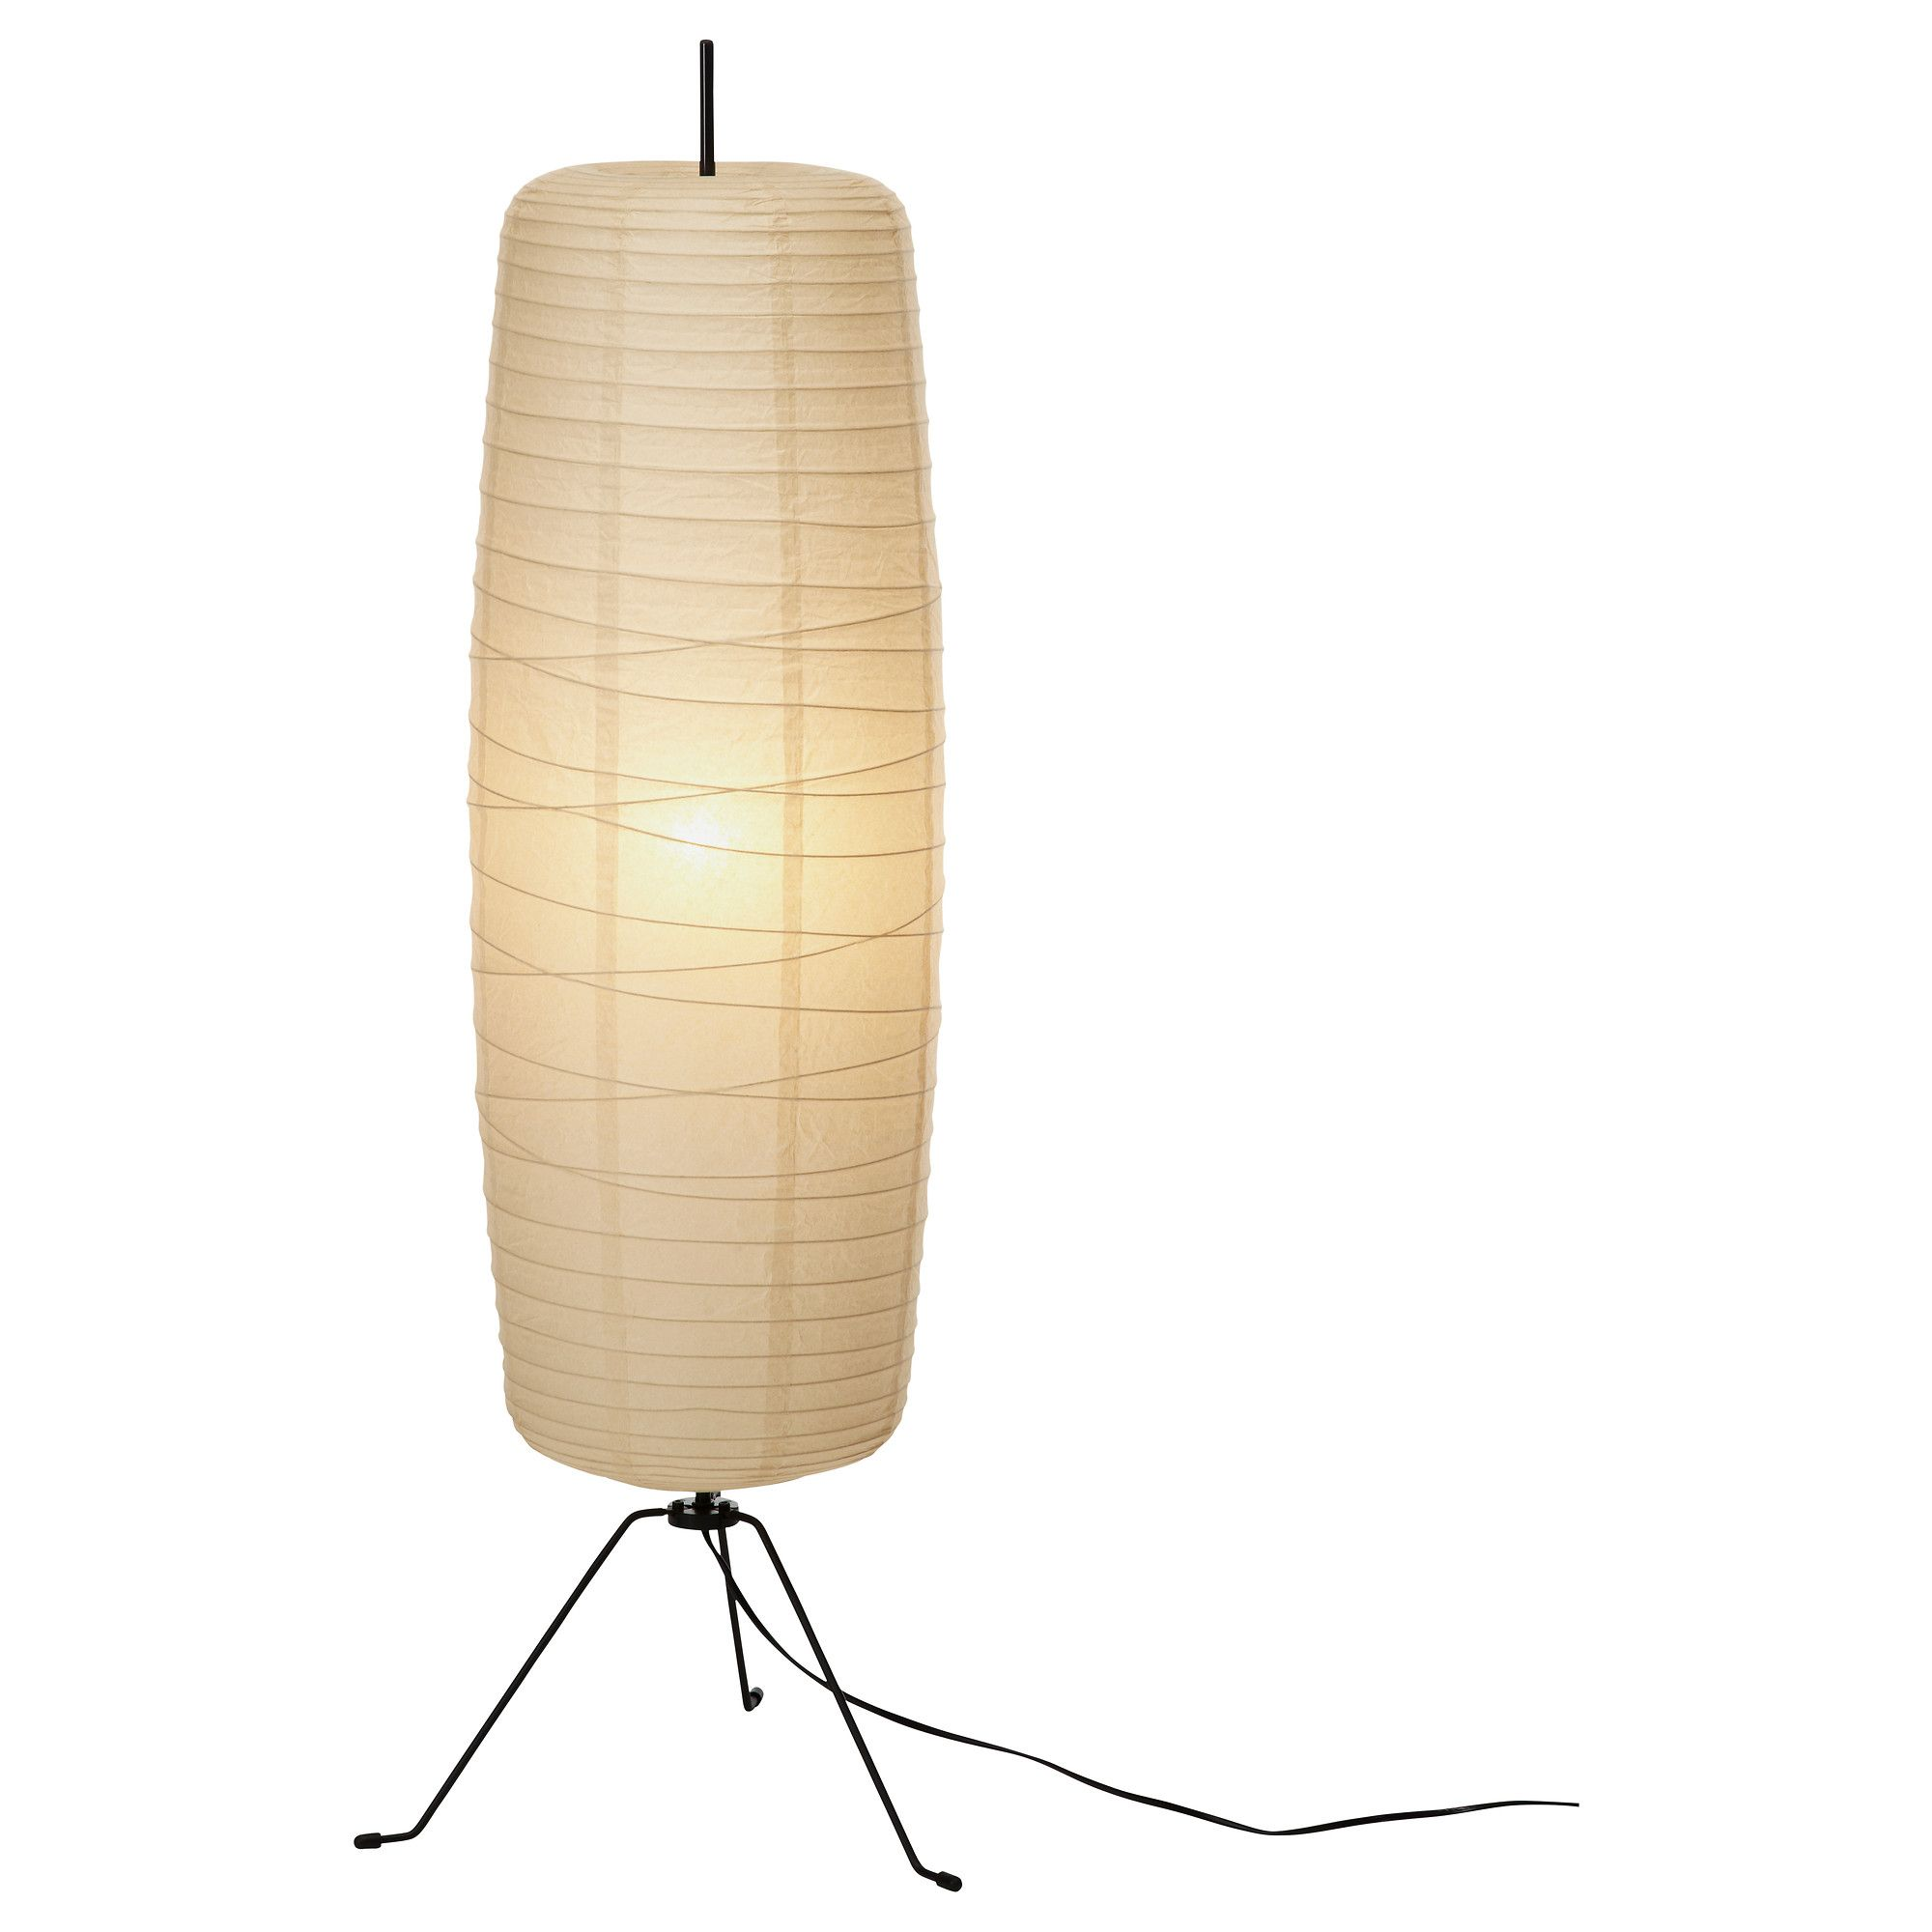 This Floor Lamp Looks Great As A Table Too Especially On Low End